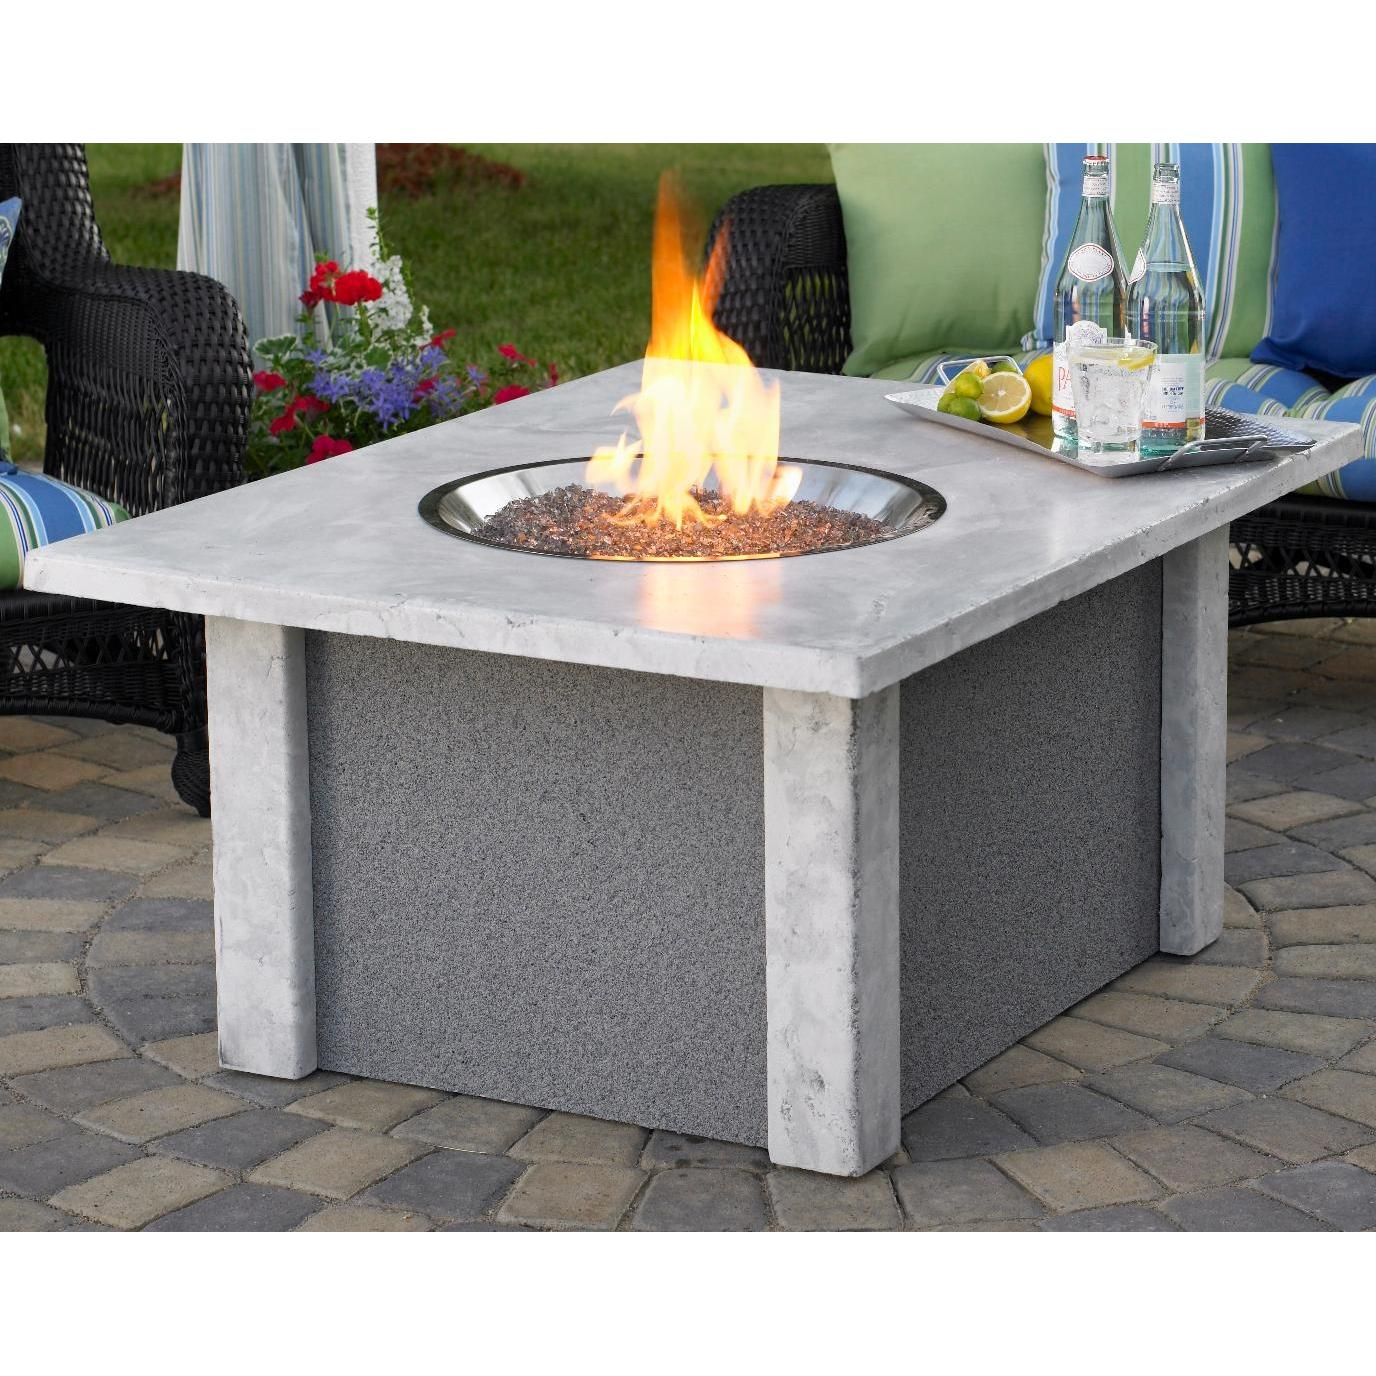 Outdoor GreatRoom Company San Juan 48 Inch Fire Pit Coffee Table In Ameristone Grey - Propane